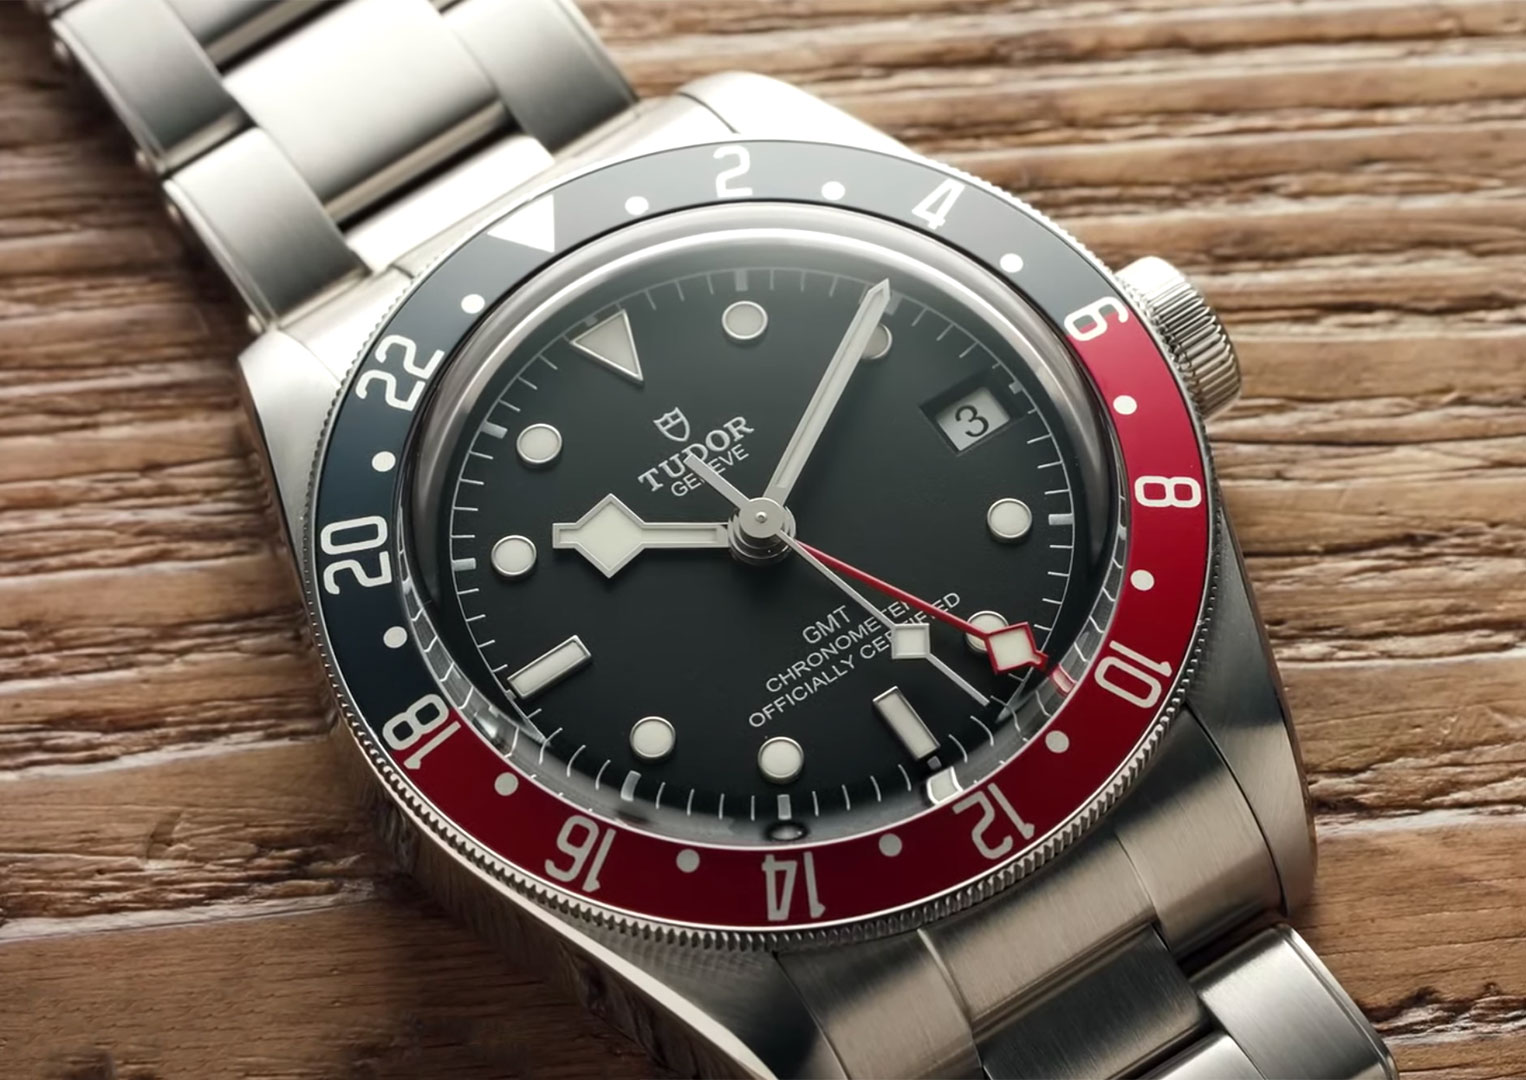 The Tudor Black Bay range first launched in 2012